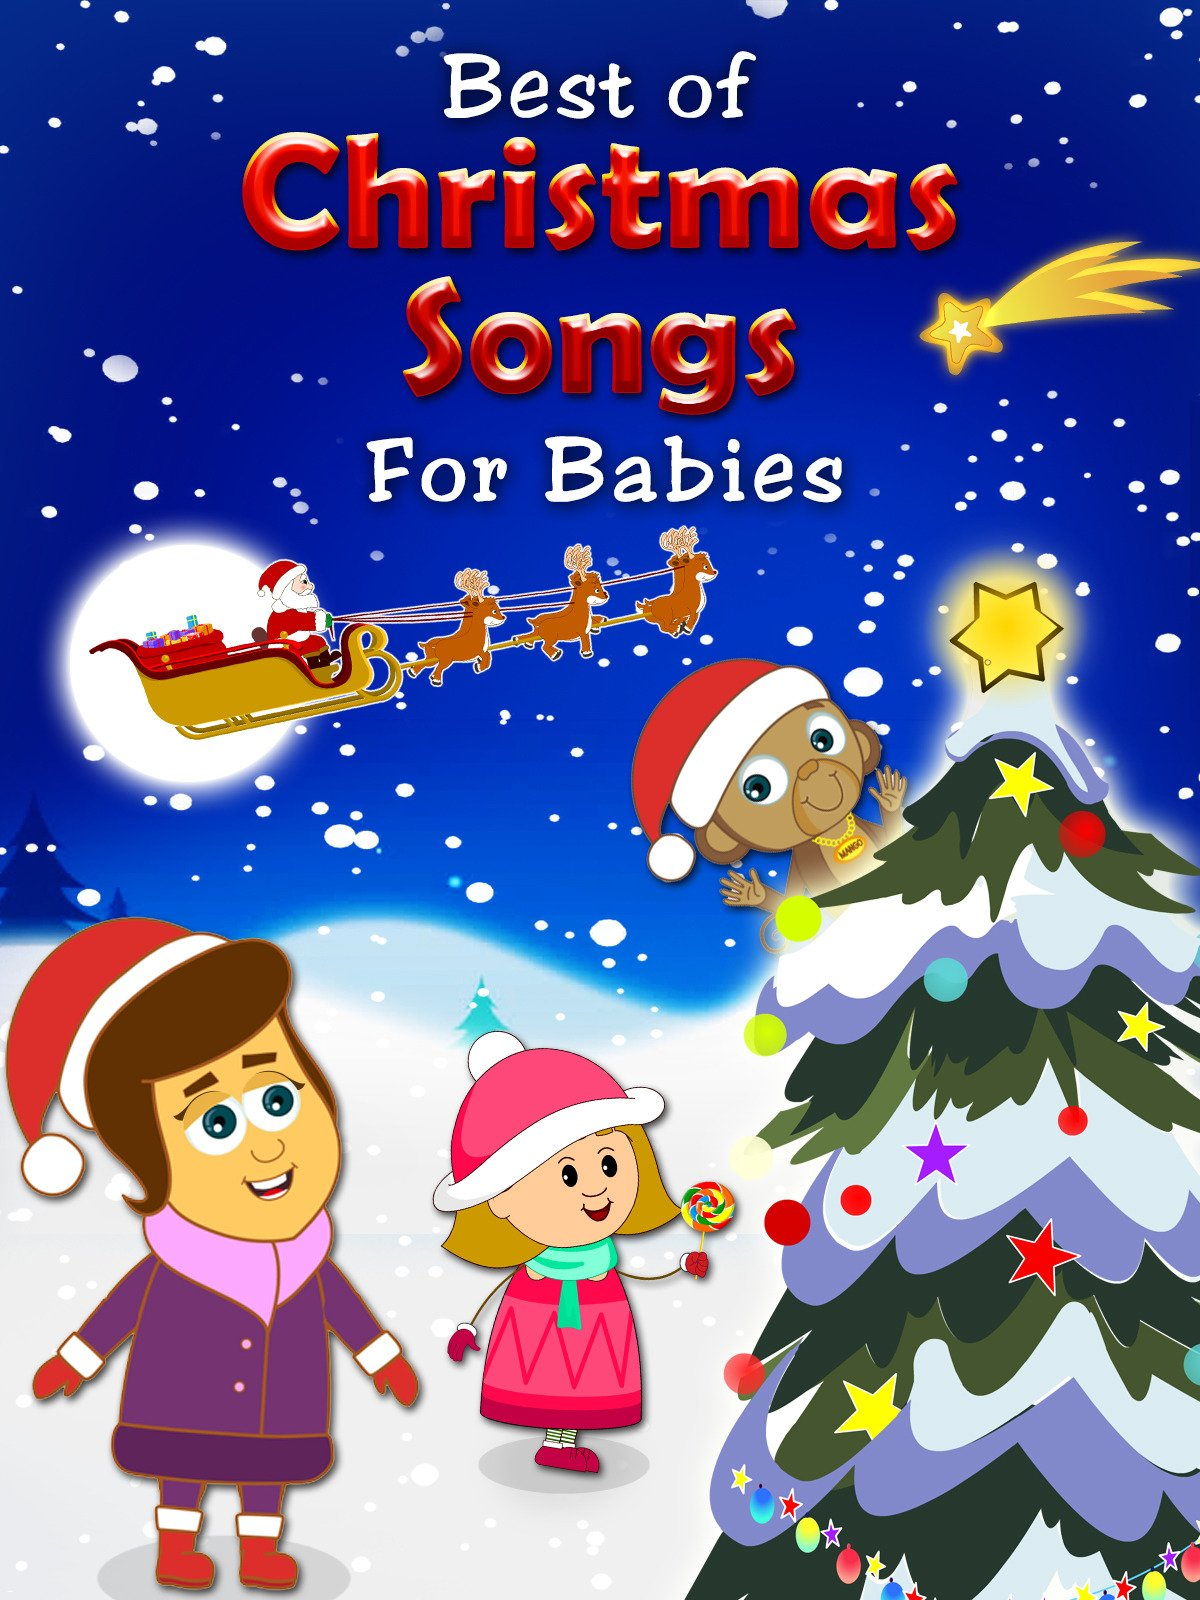 Best Of Christmas Songs For Babies